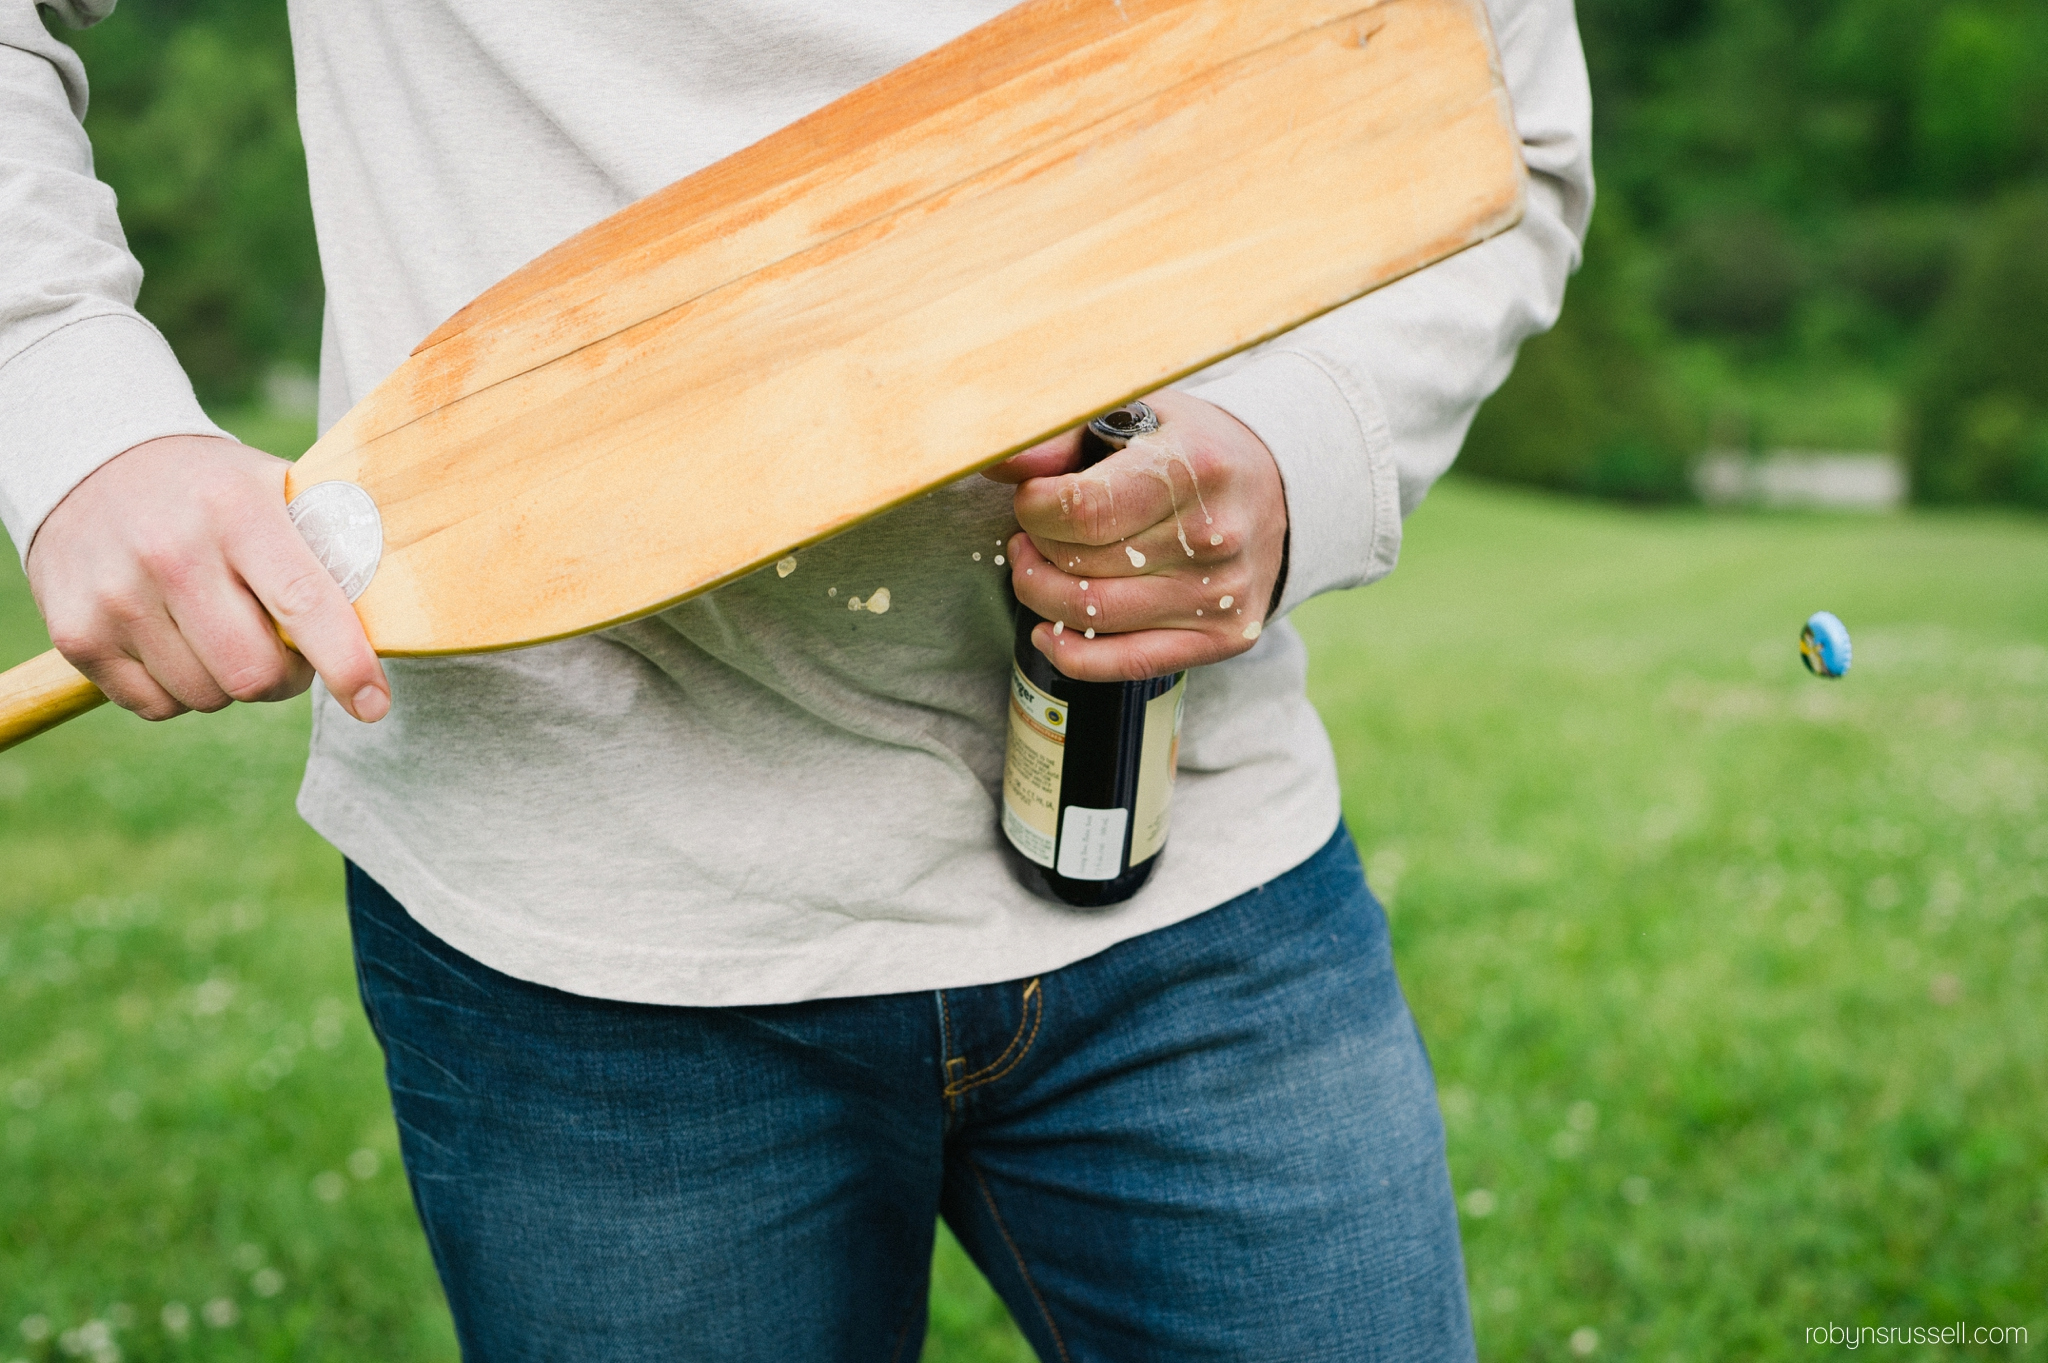 1-cracking-open-beer-with-a-paddle.jpg